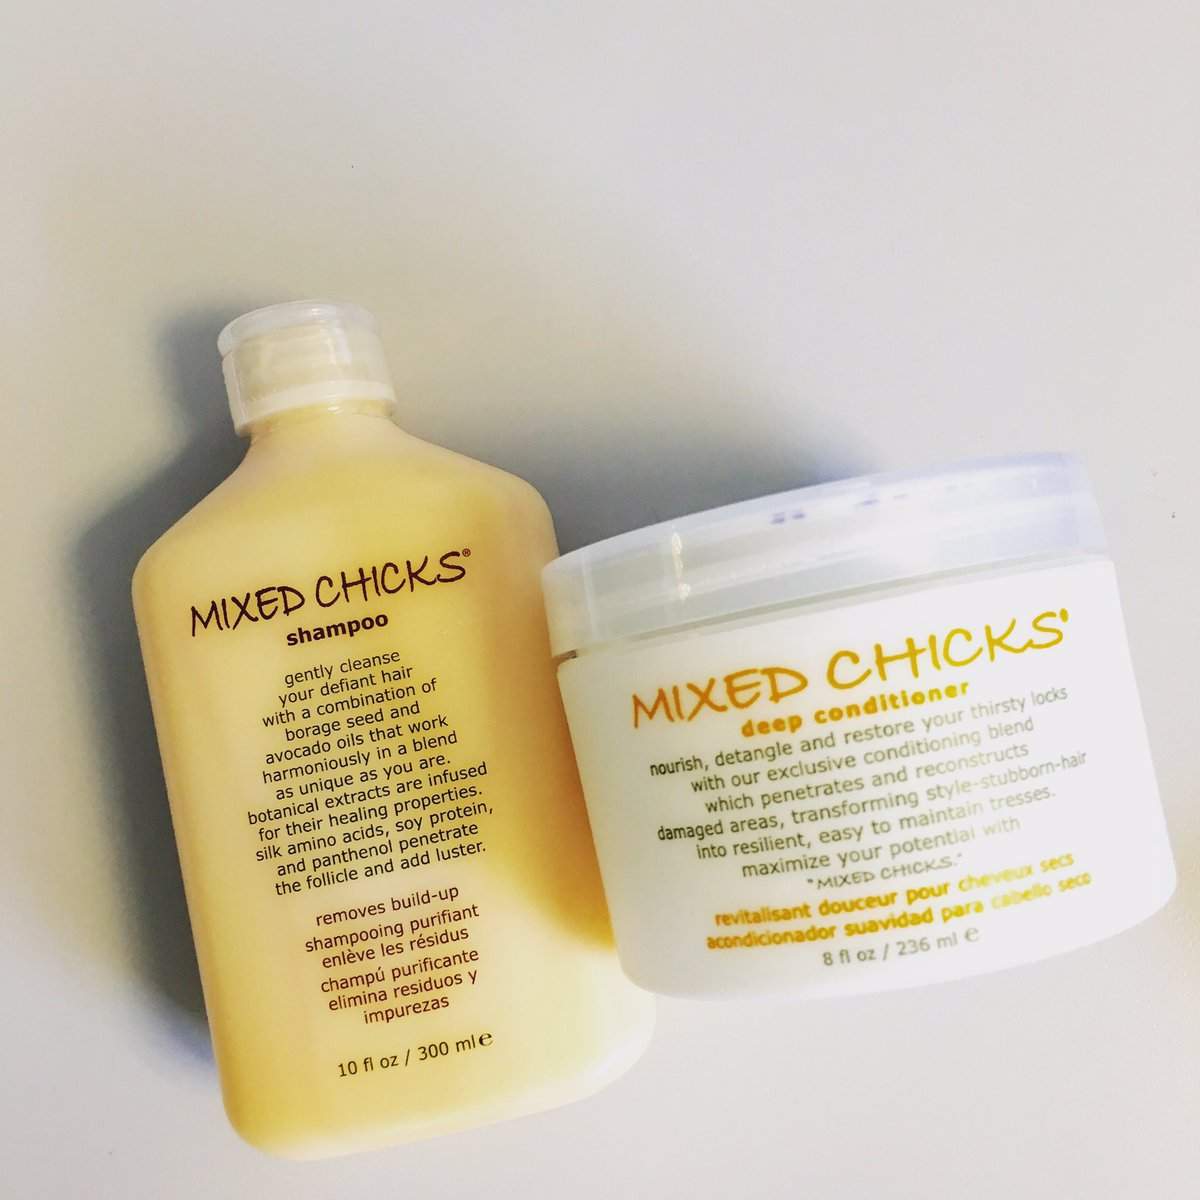 Theee best stuff for my curls, soft hyradated and defined @mixedchicks